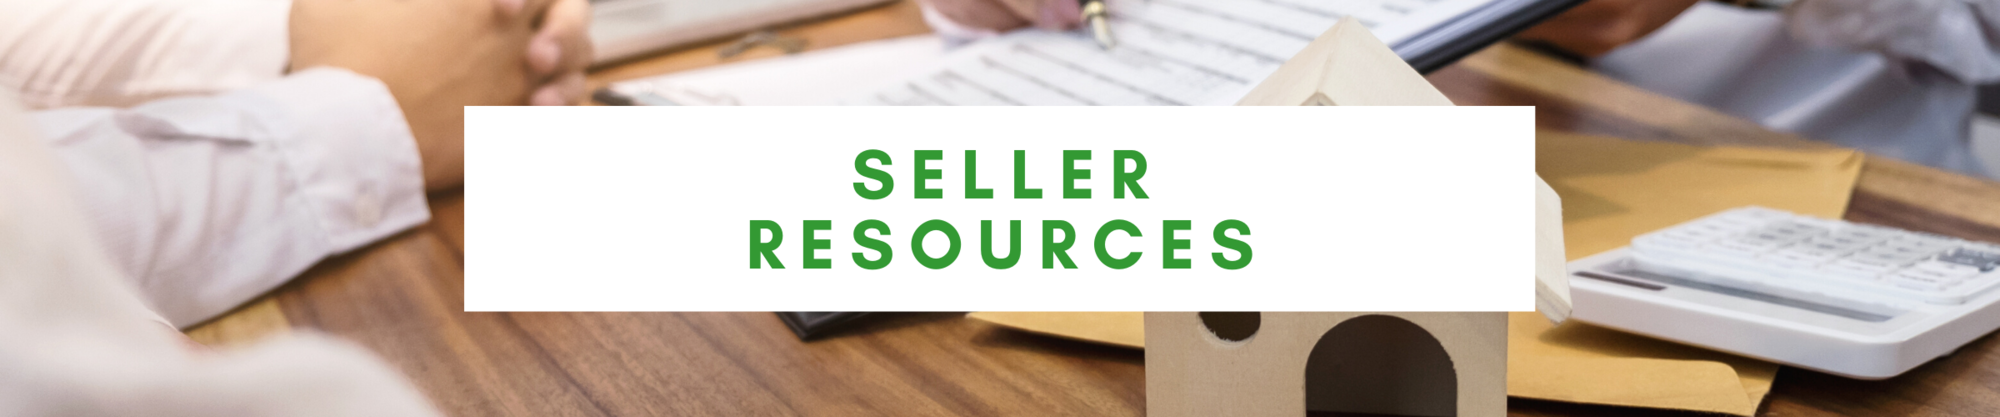 Seller Resources | Amy Stepp Greif | Kansas City Homes